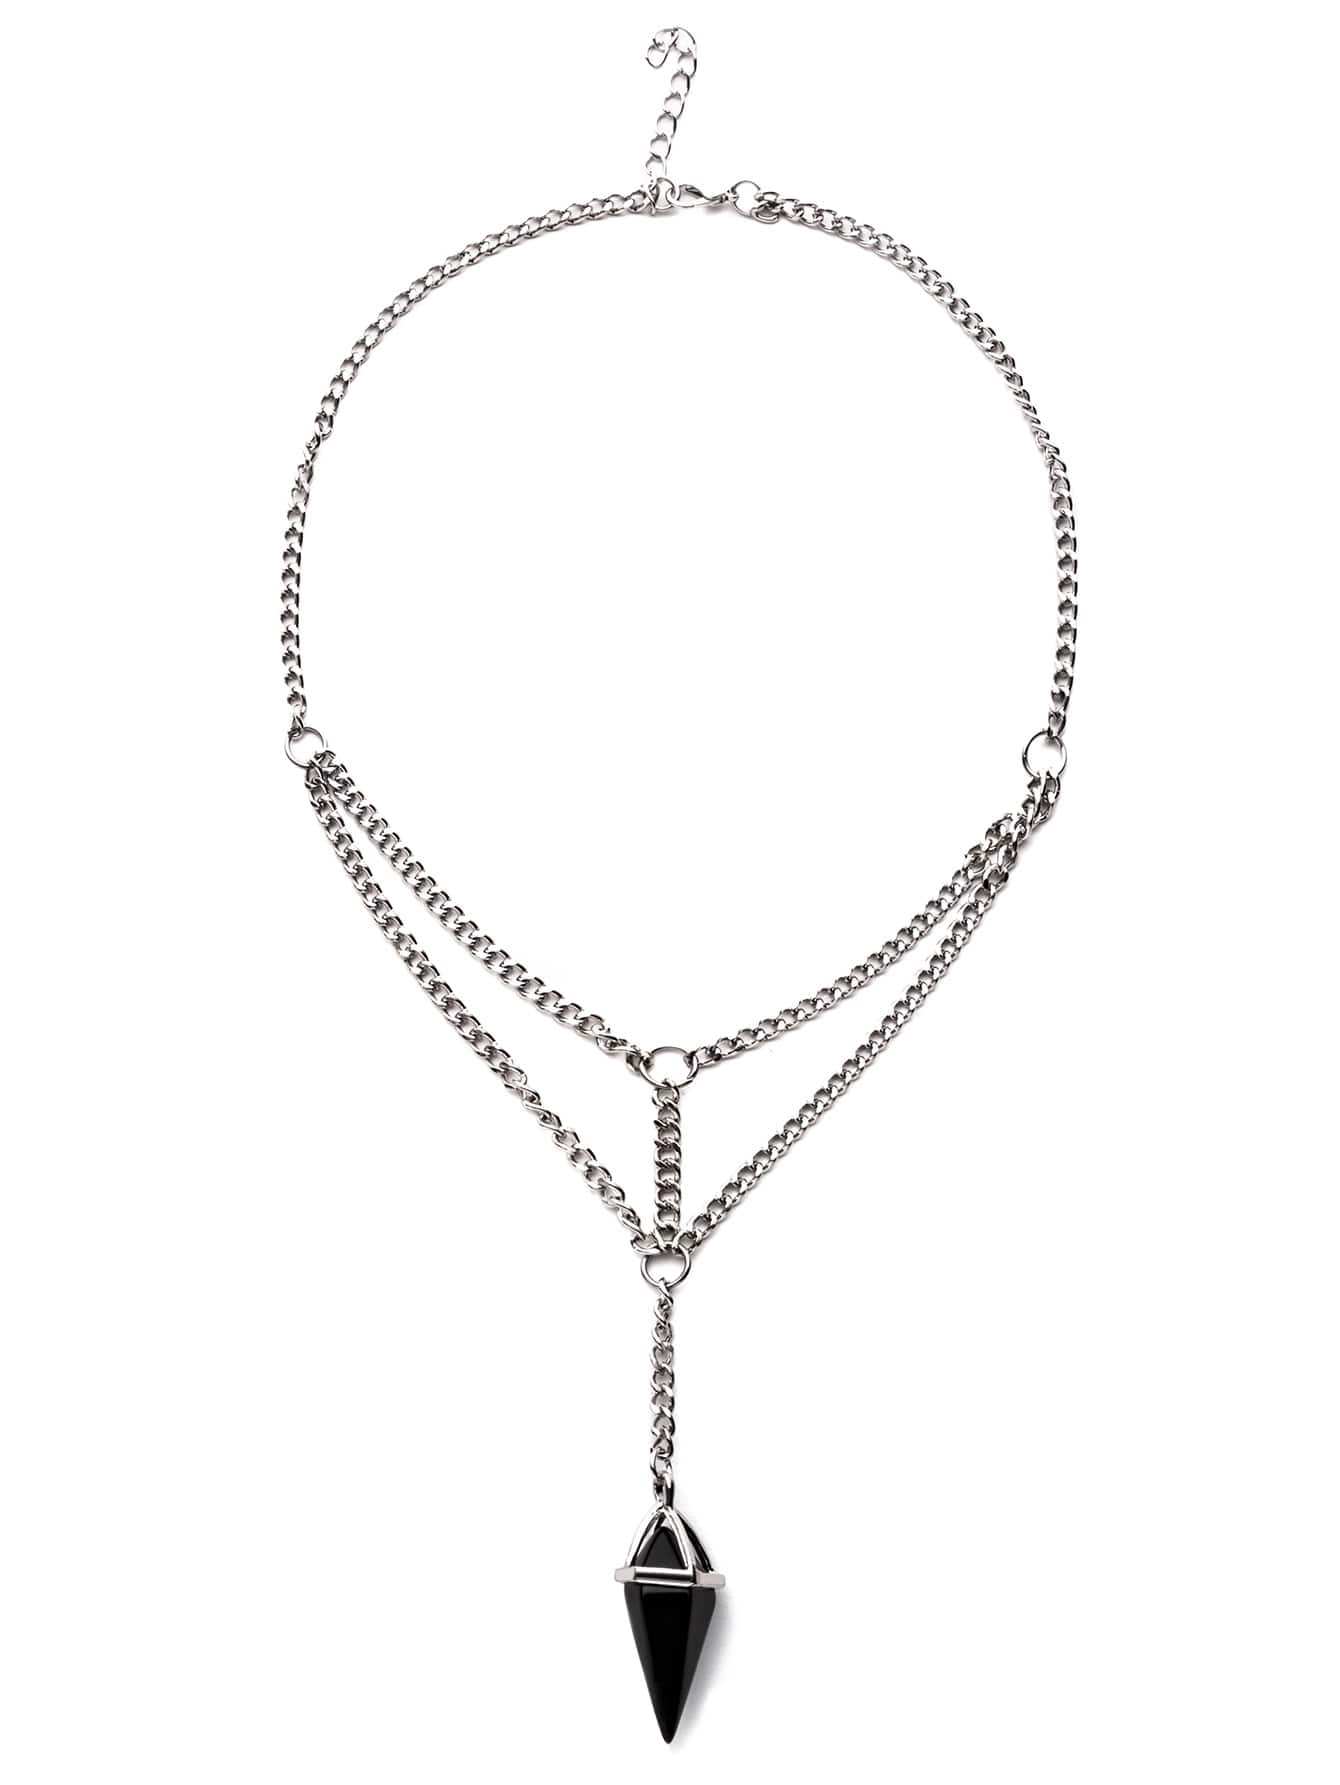 Image of Antique Silver Layered Crystal Pendant Necklace